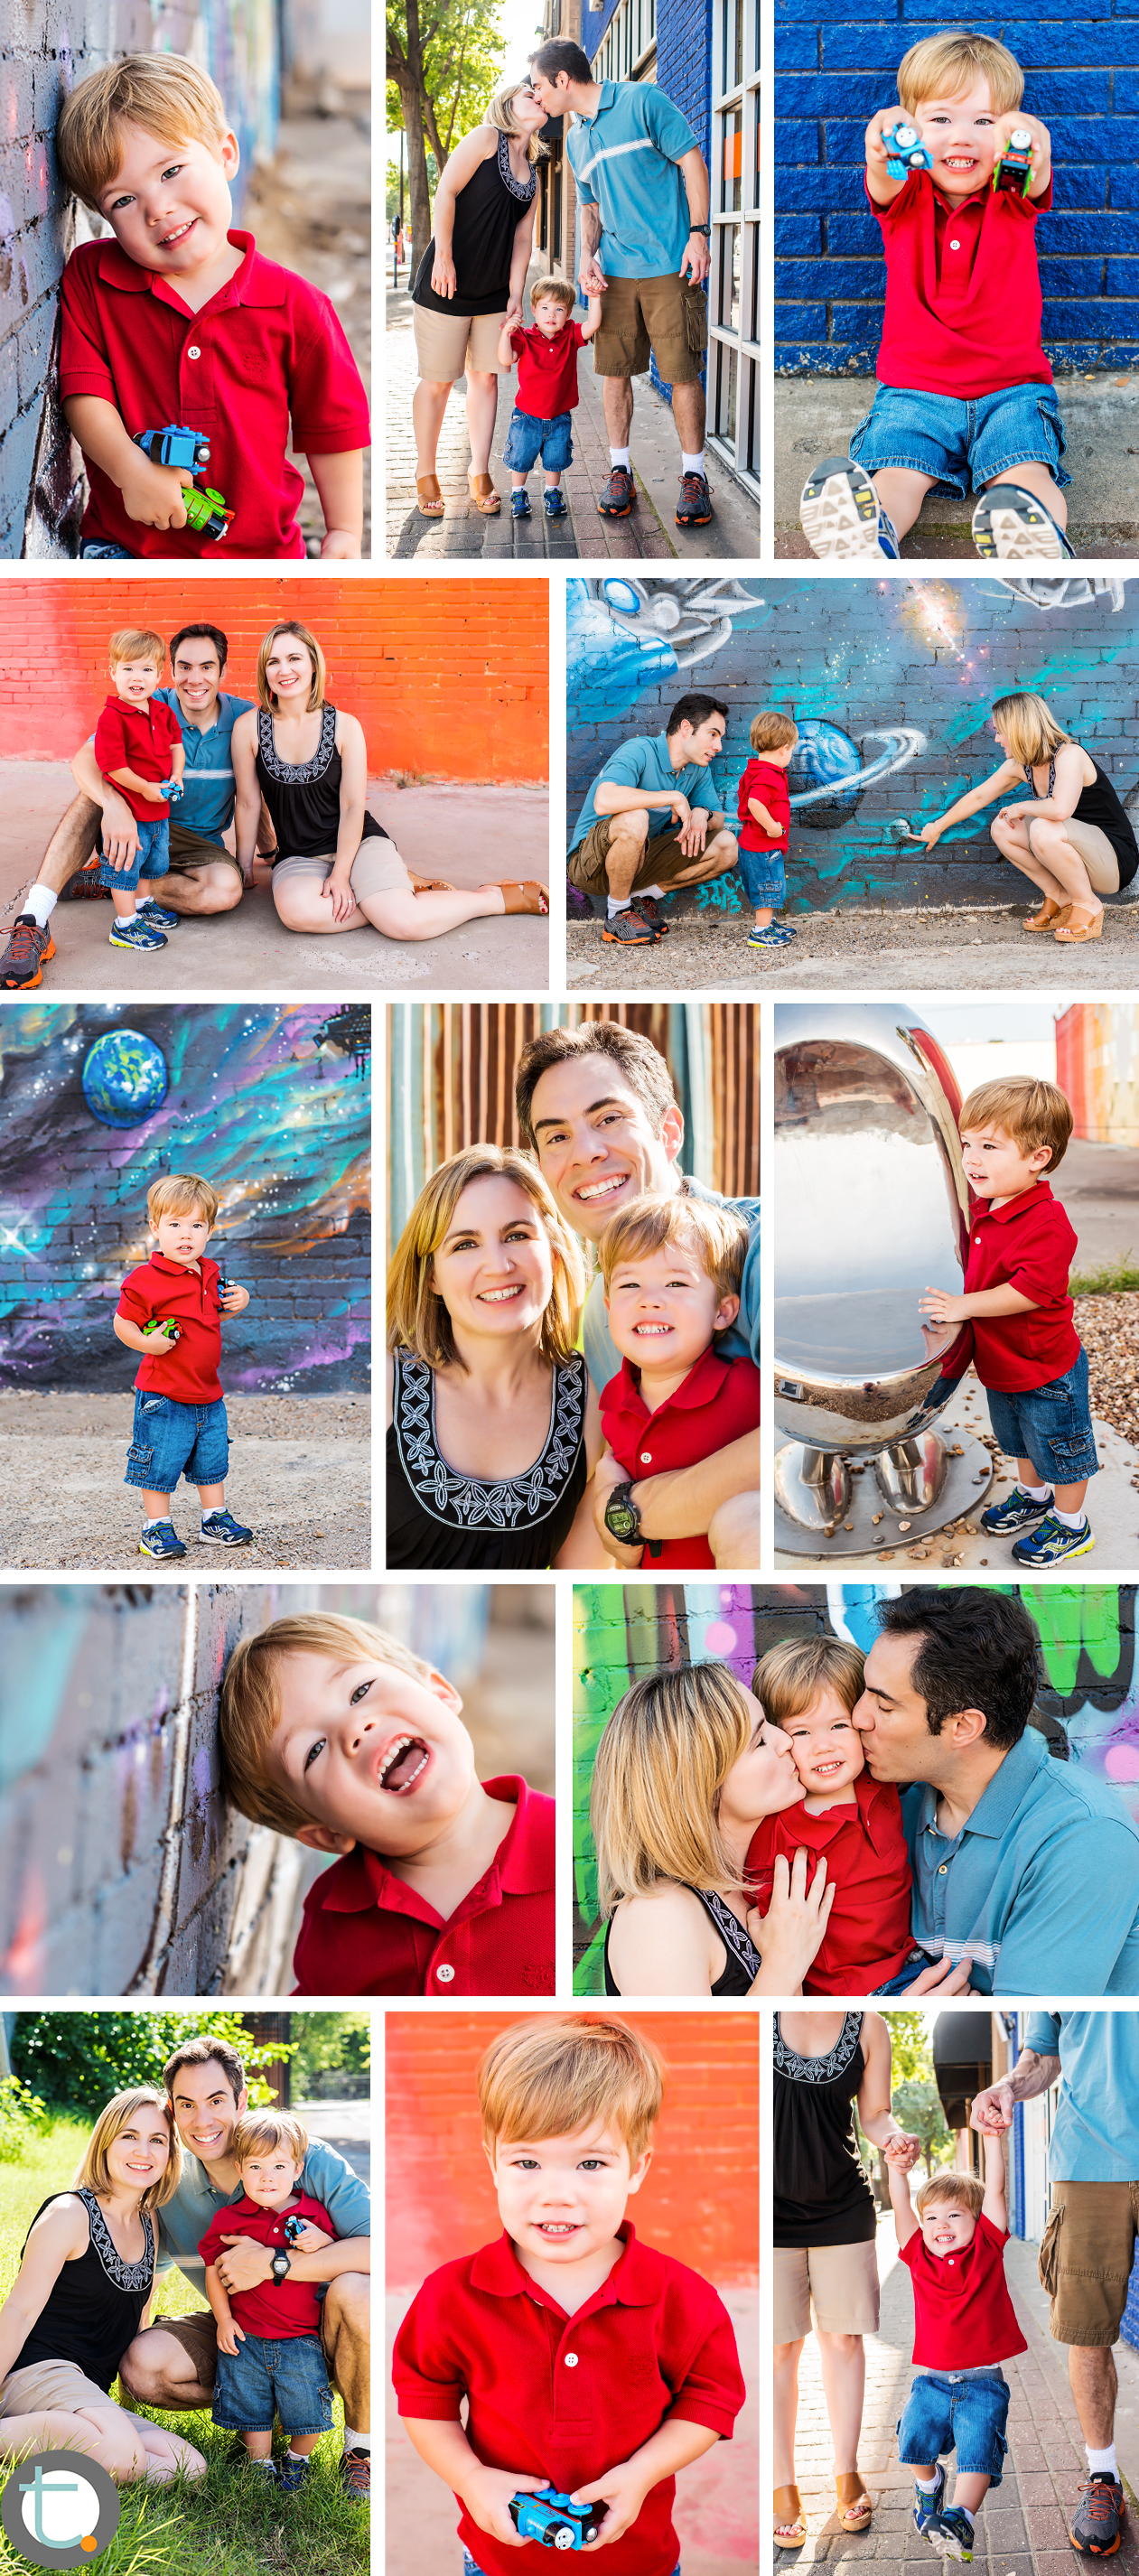 Urban_Family_Portraits_DeepEllum_TracyAllynPhotography_2014_Summer_Trains